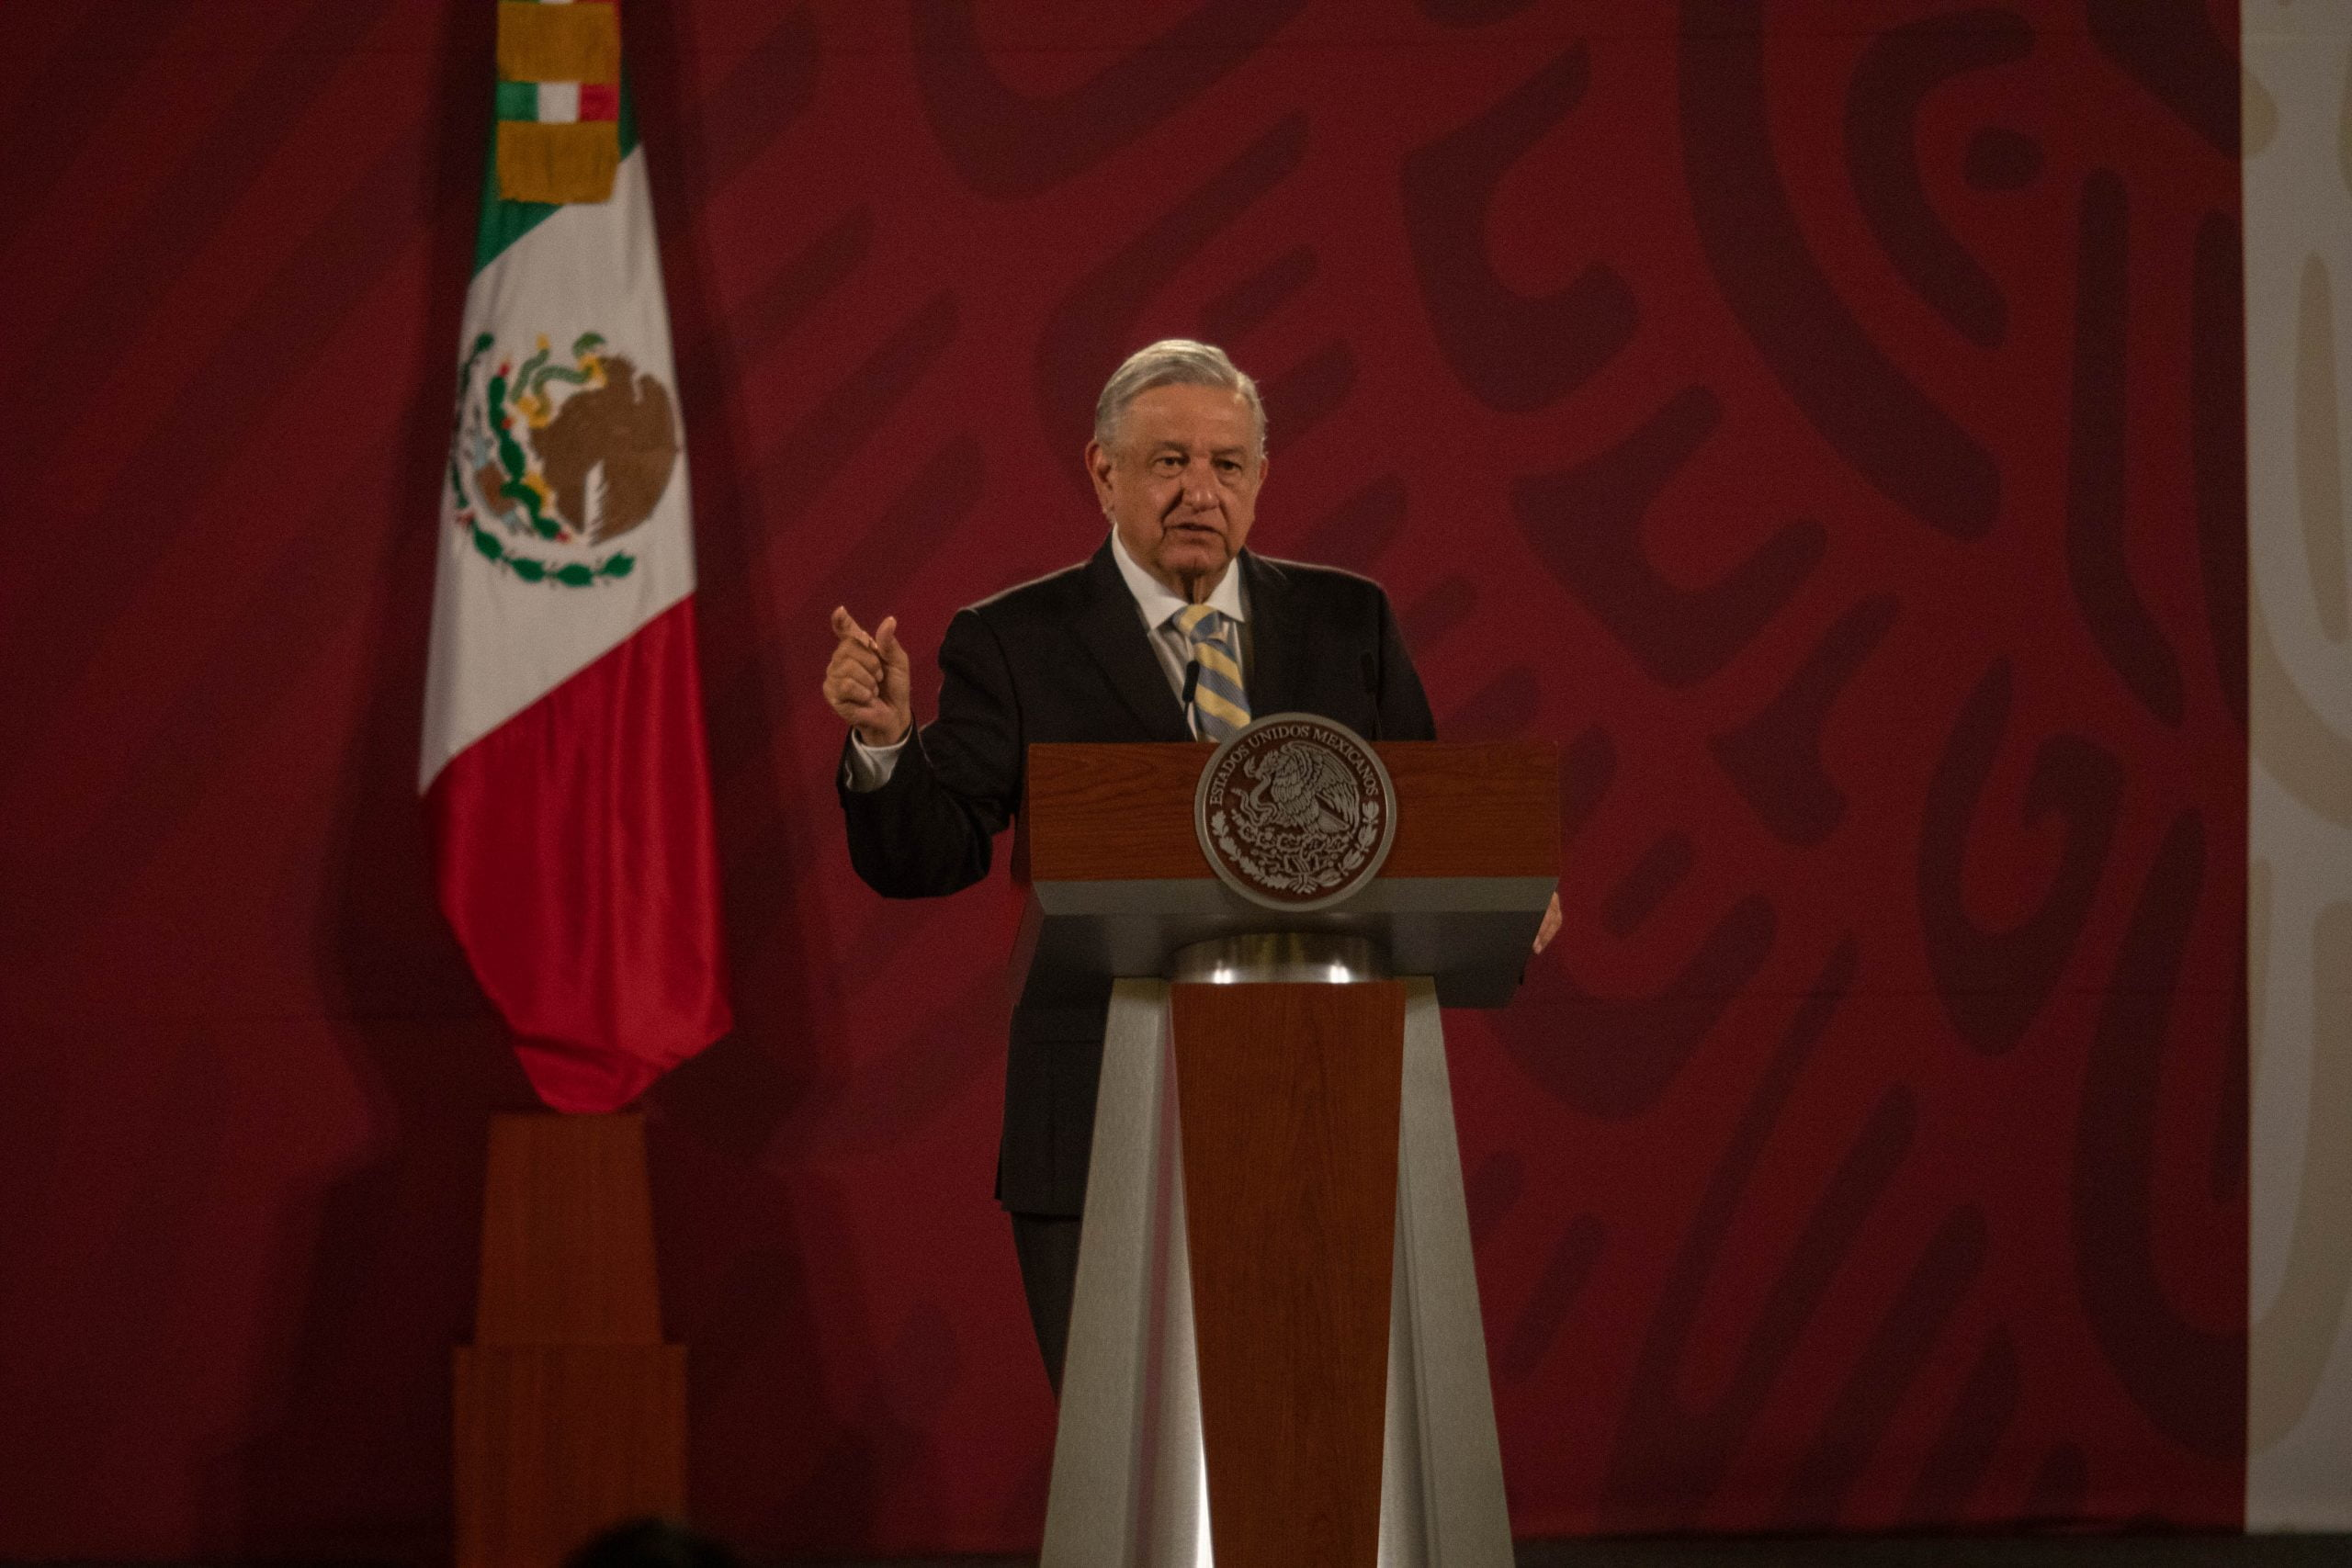 The Supreme Leader of Mexico is in favor of consultation on the assessment of former presidents